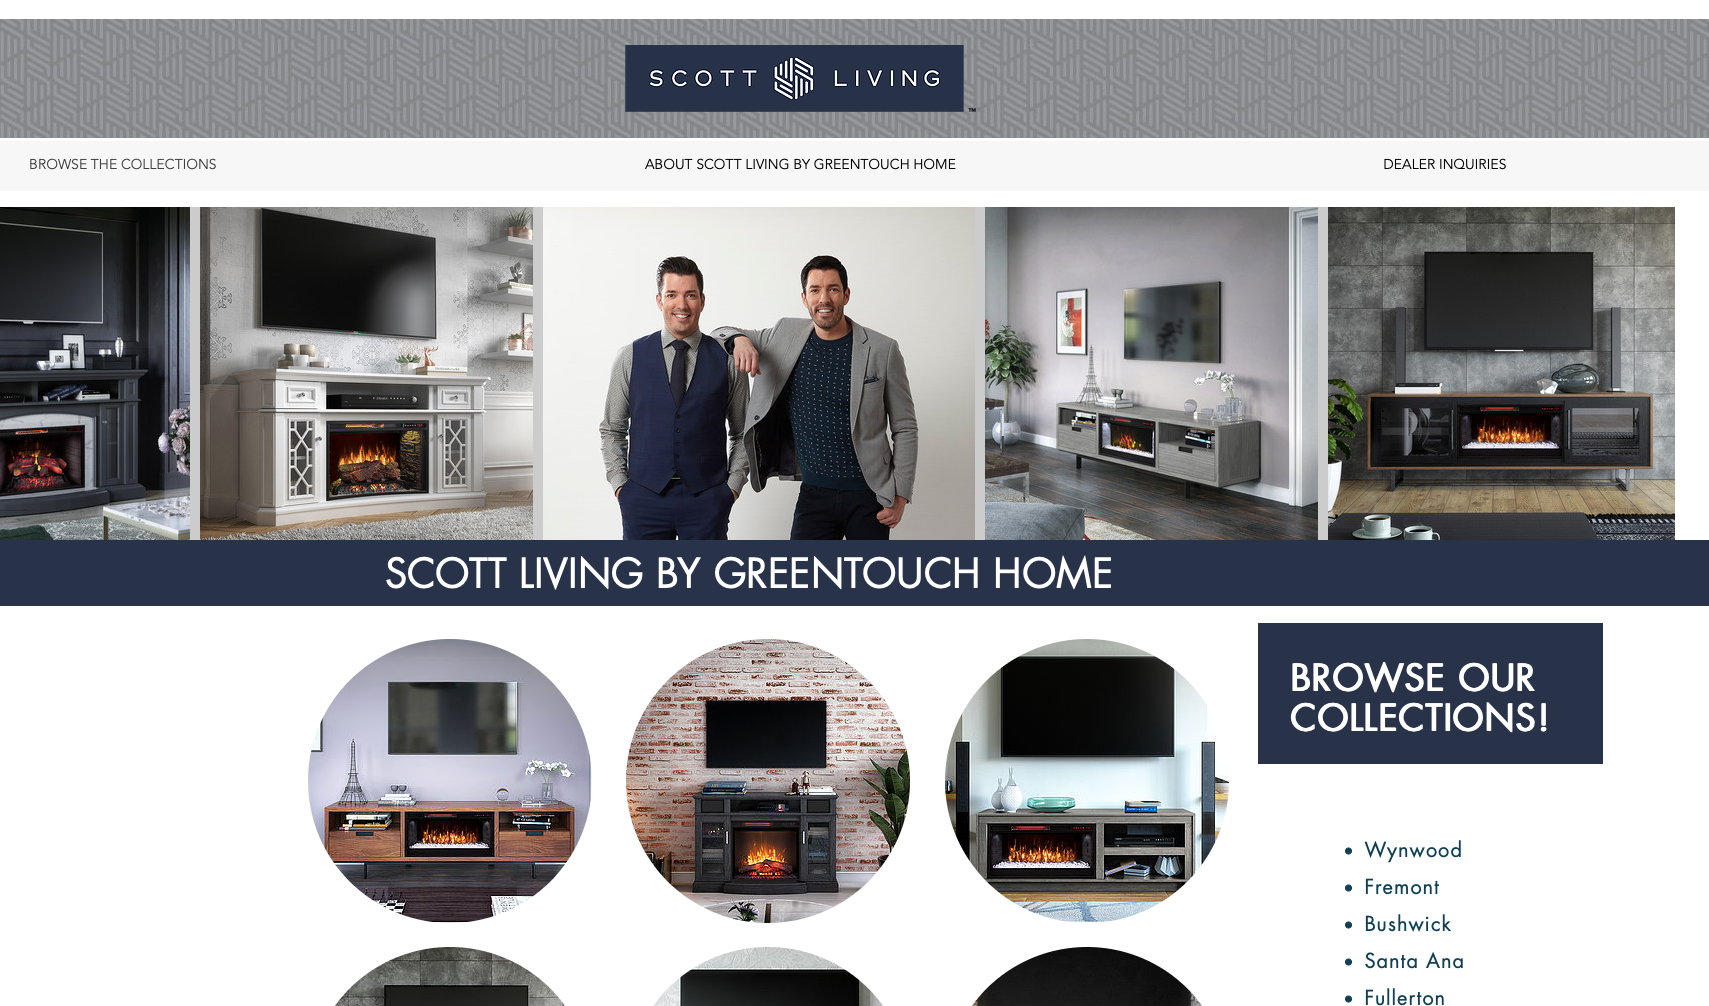 Scott Living by Greentouch Website